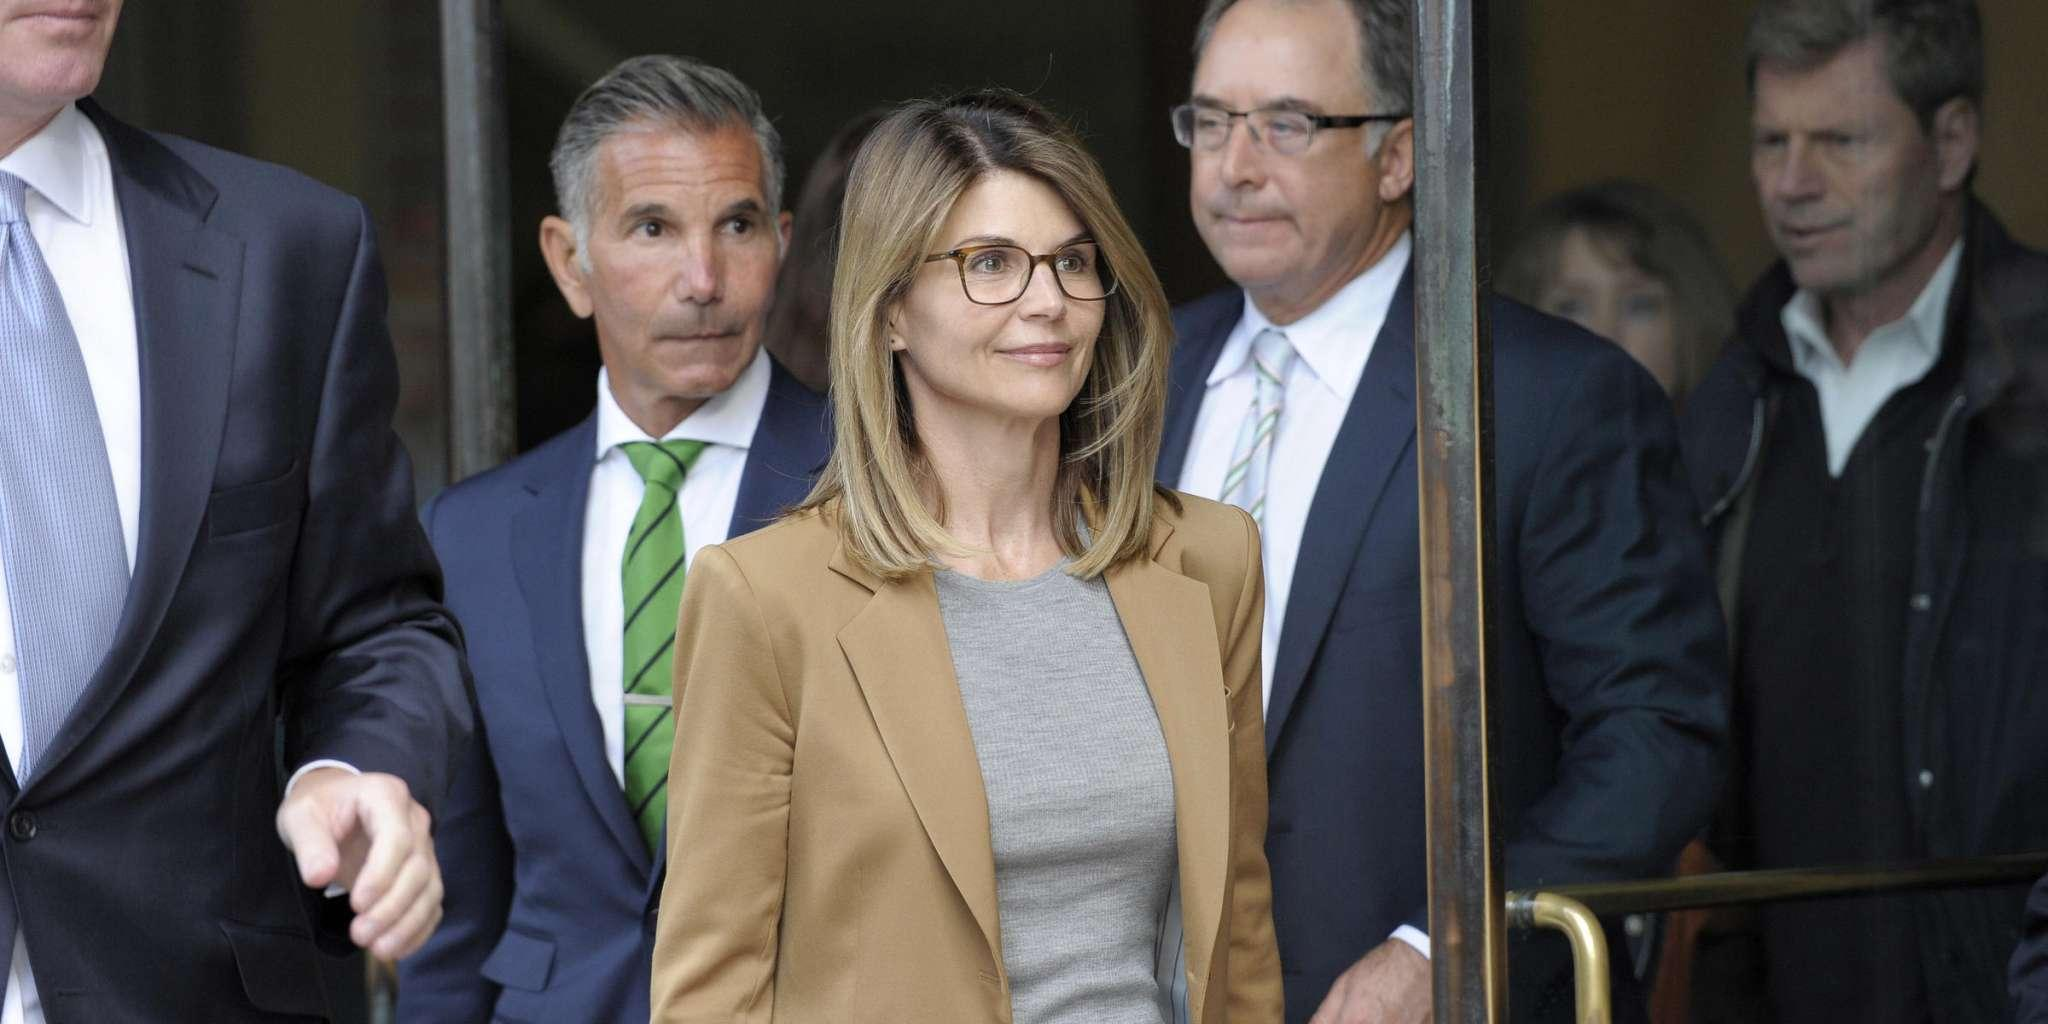 Lori Loughlin Doesn't Think She Did Anything That Bad - Will Never Stop Fighting The Charges!